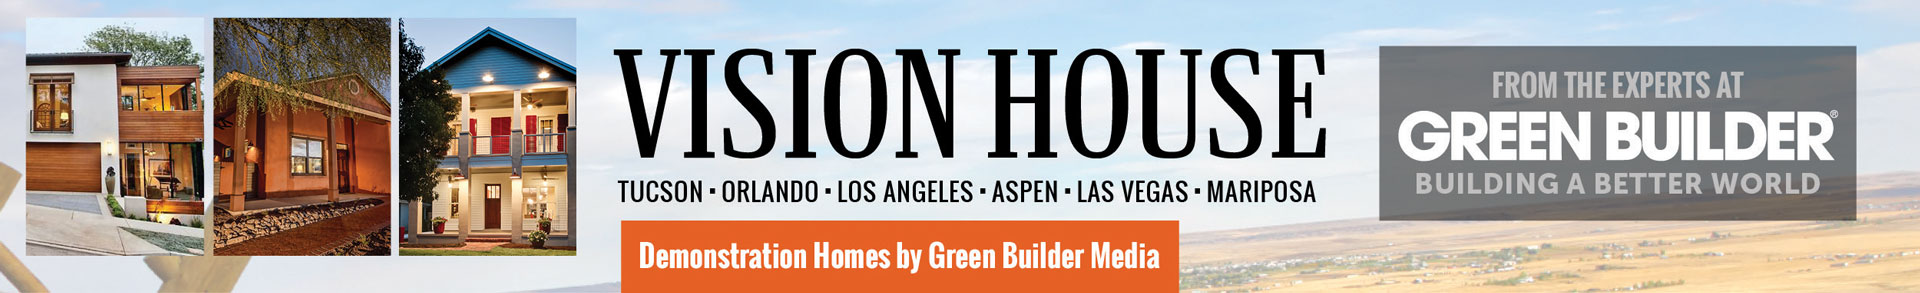 Green Builder Vision House Series